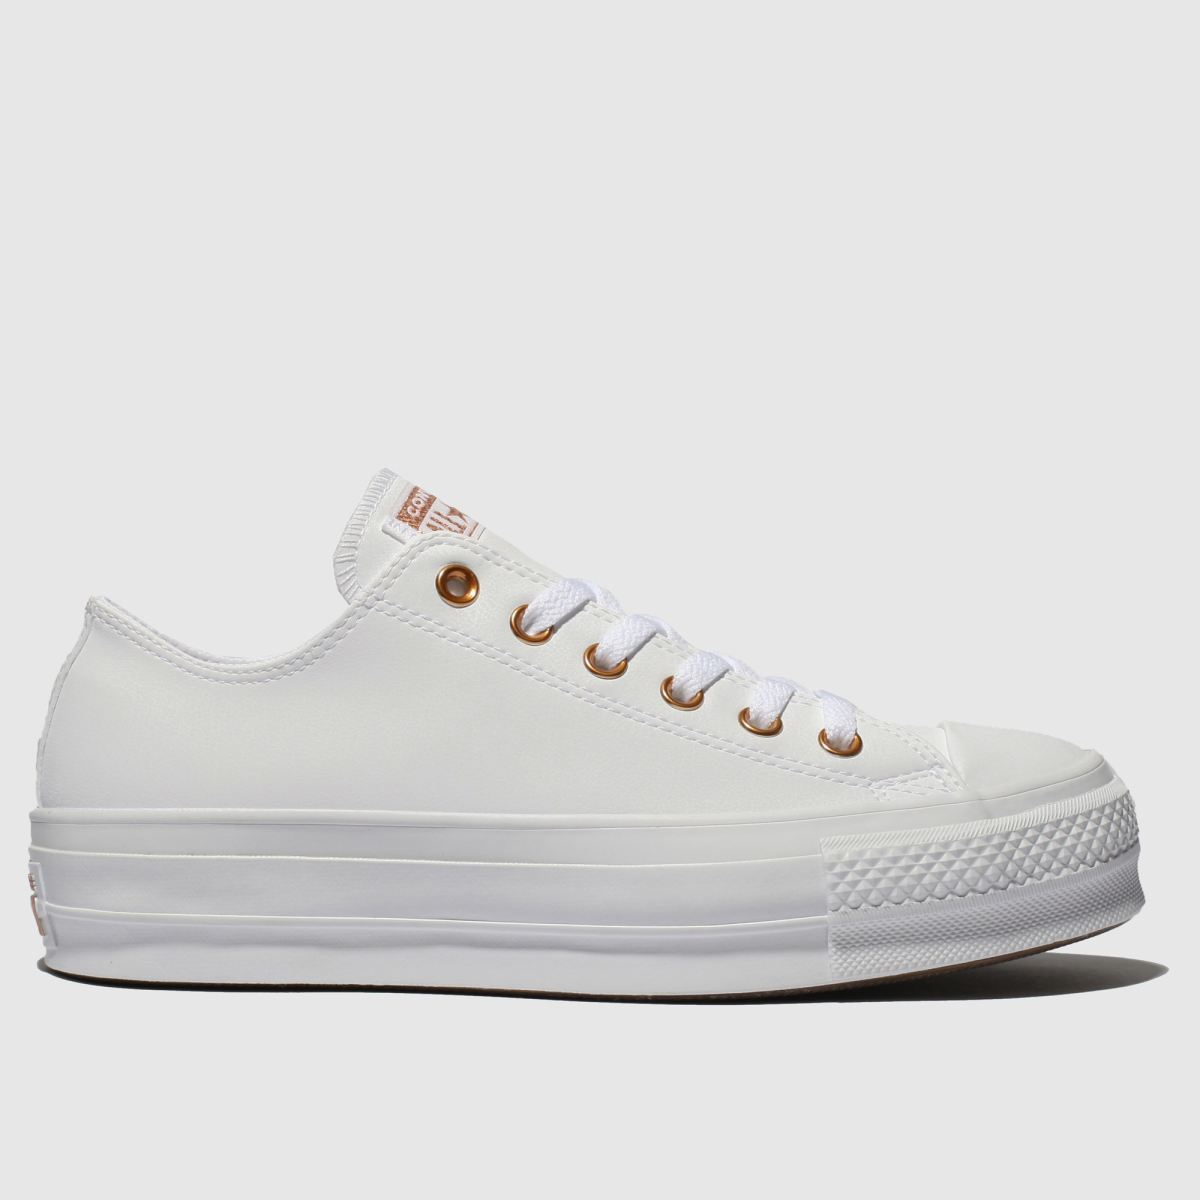 Converse White All Star Clean Lift Trainers | UK 8 | Female